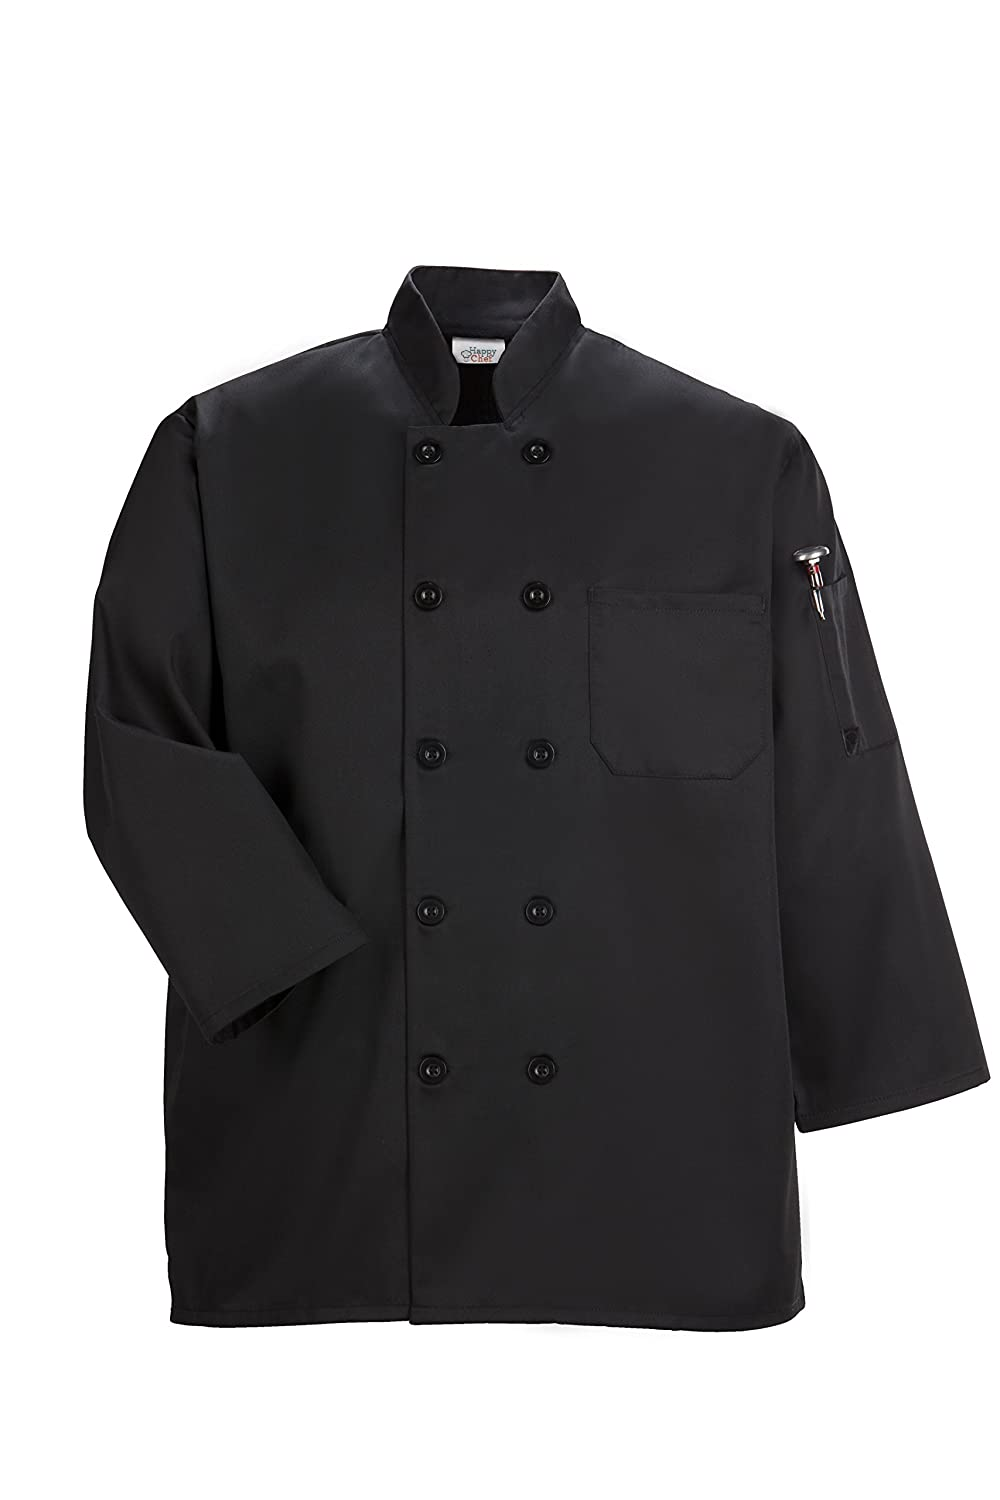 Happy Chef Traditional 3/4 Sleeve Chef Coat 403-3/4